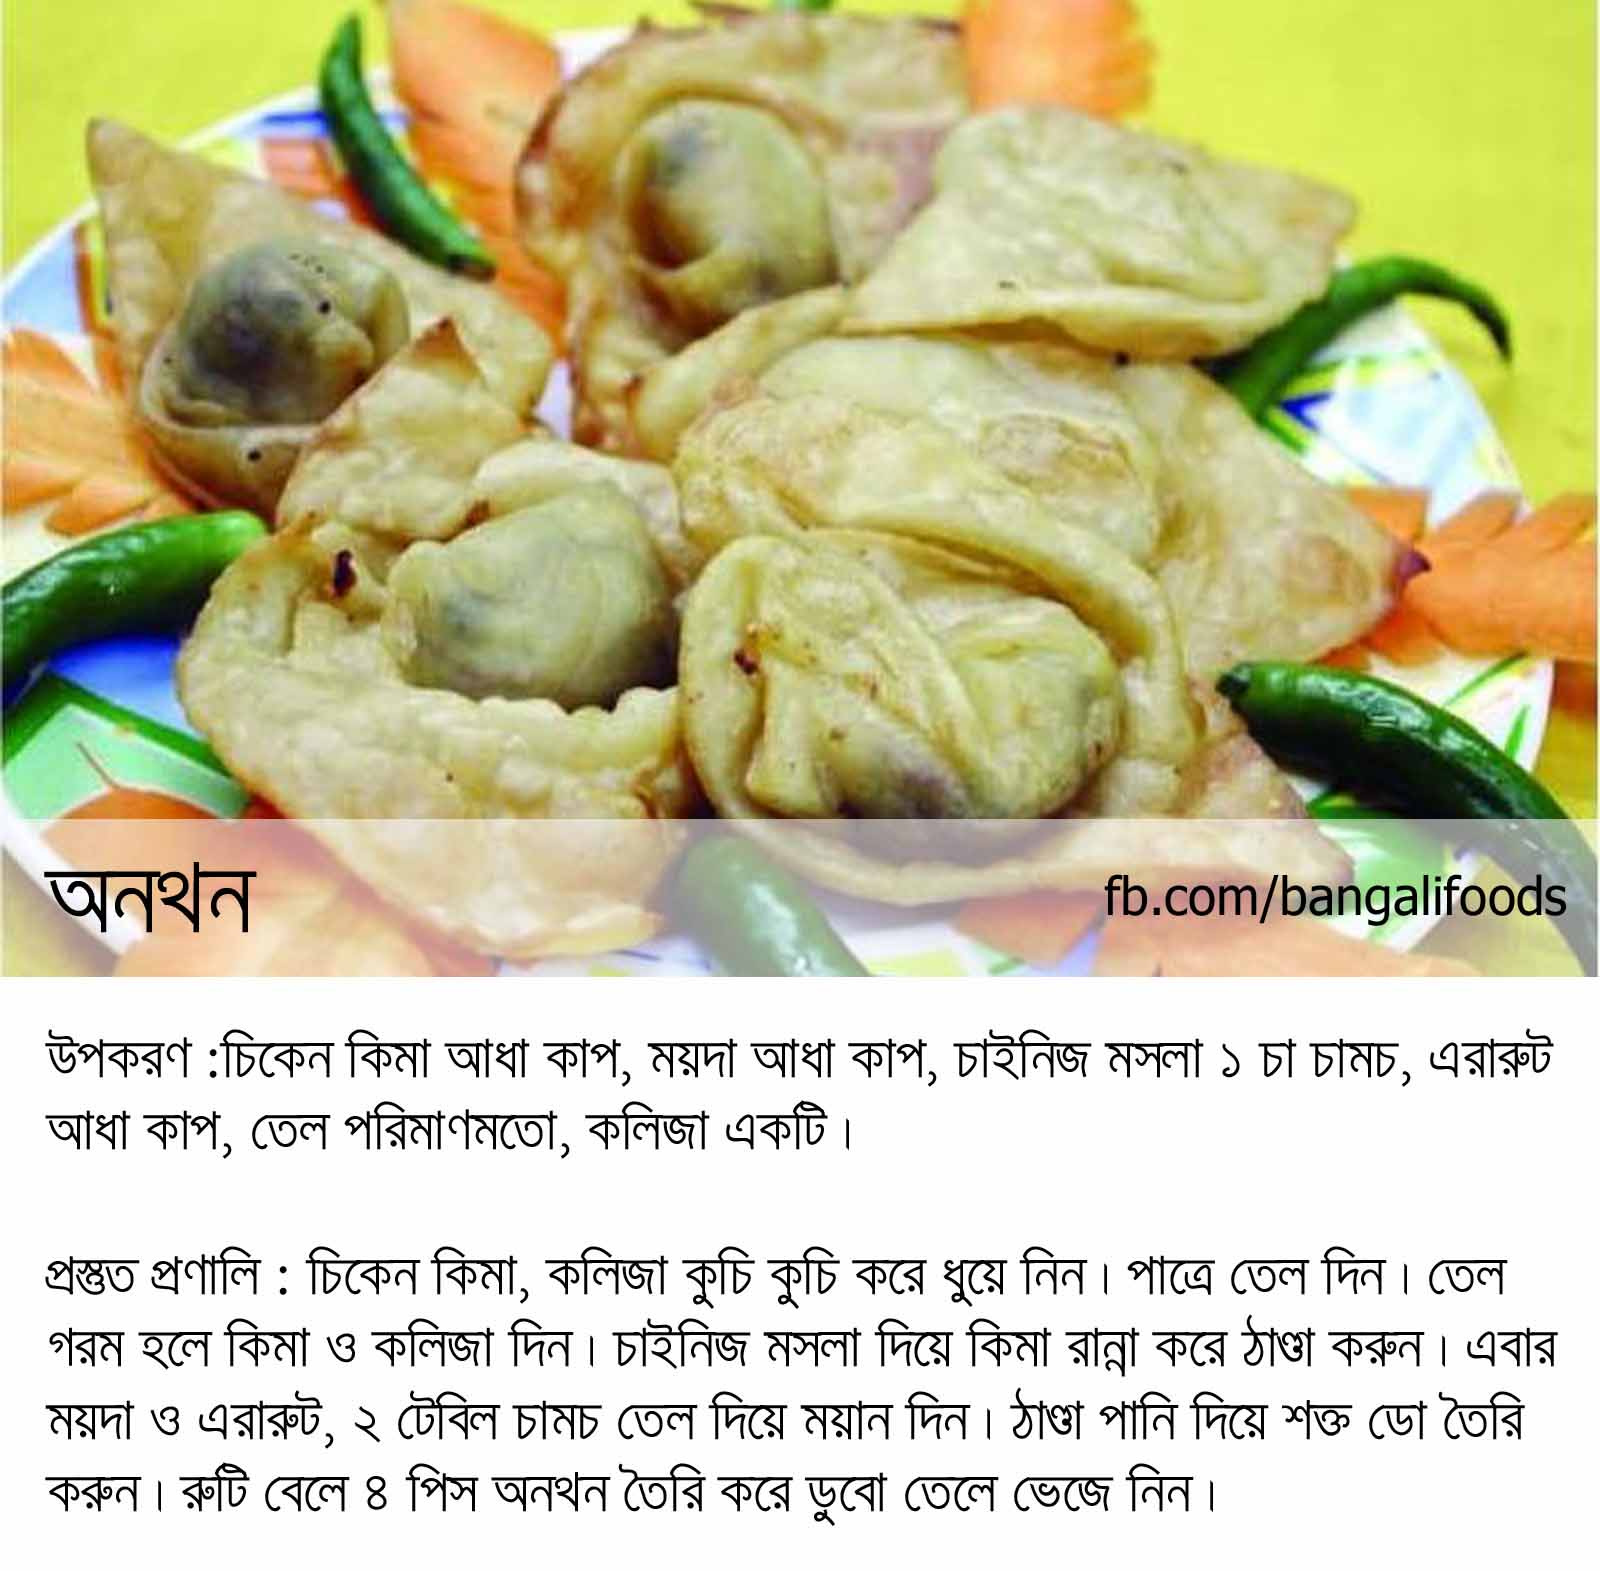 Bangali foods snack food recipes in bengali wonton with chicken in bangla language forumfinder Gallery